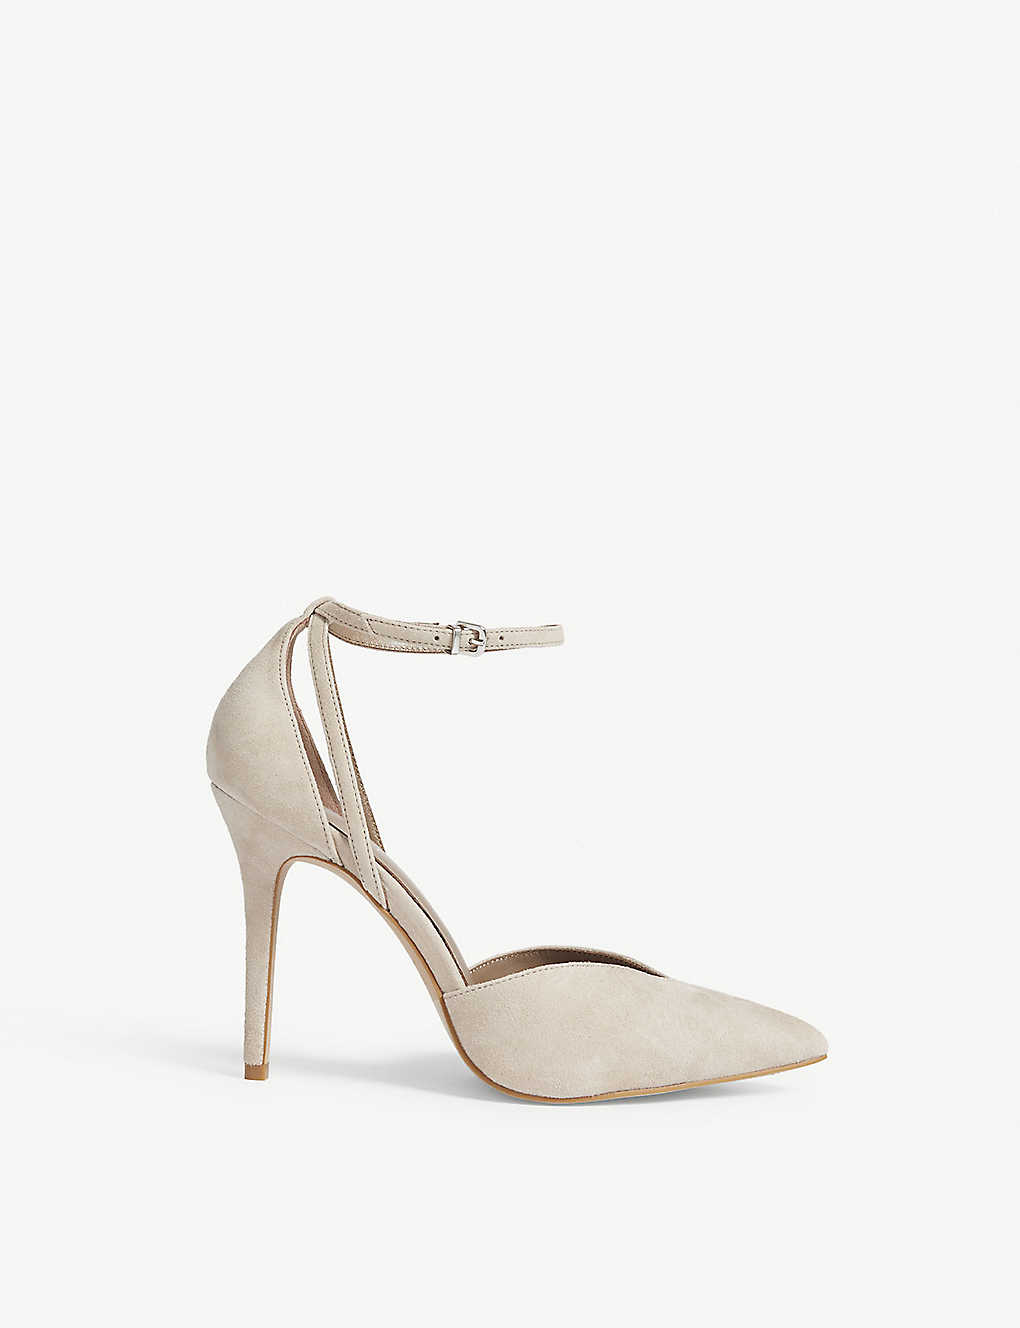 4efd41101ba REISS - Katya suede sandals | Selfridges.com